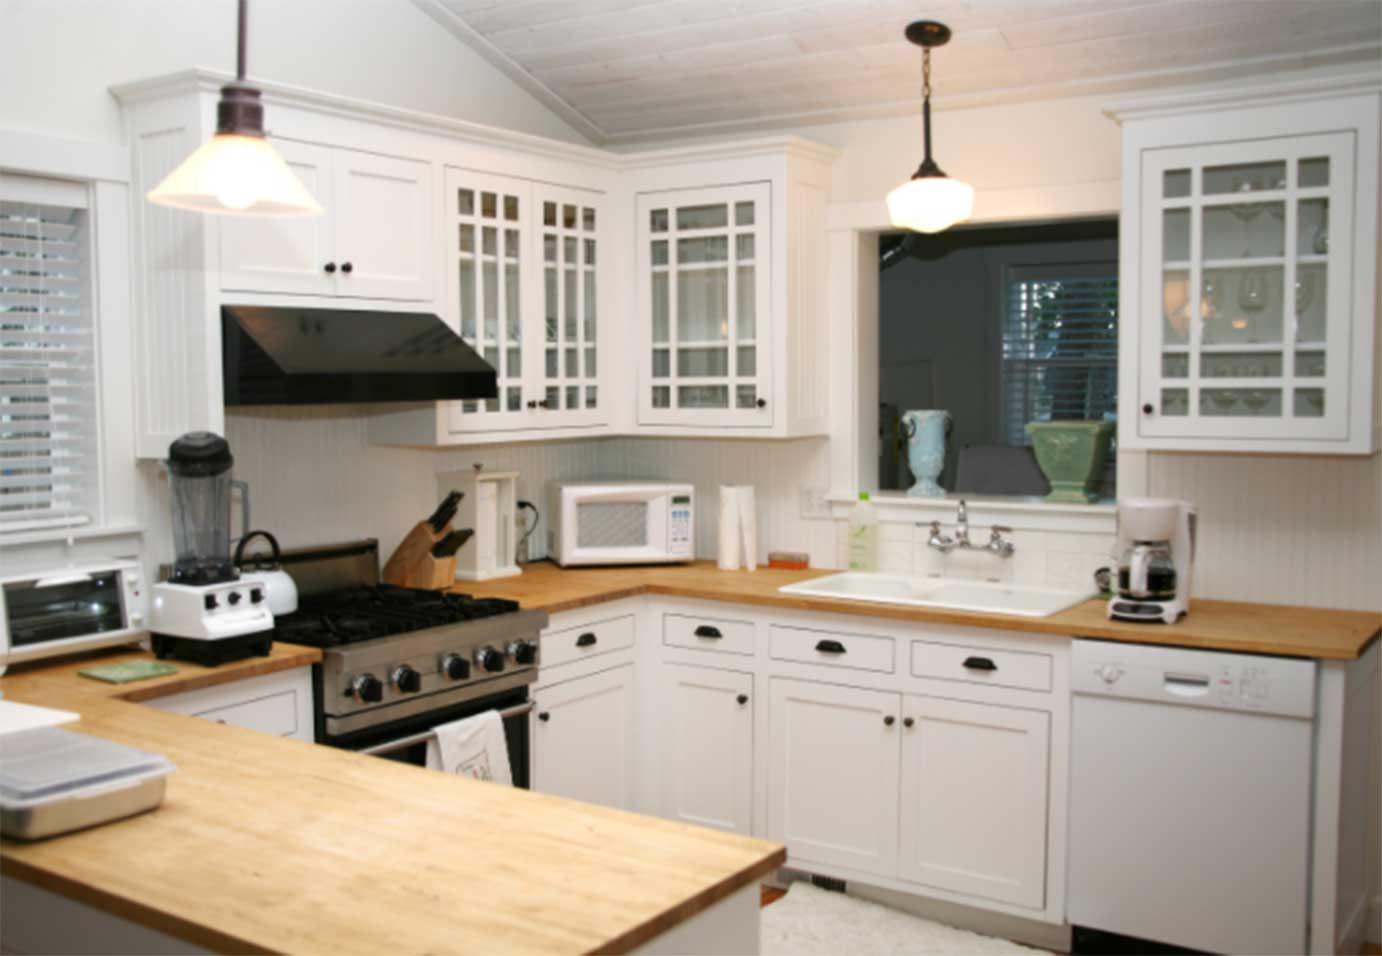 What Makes White Cabinets so Great?